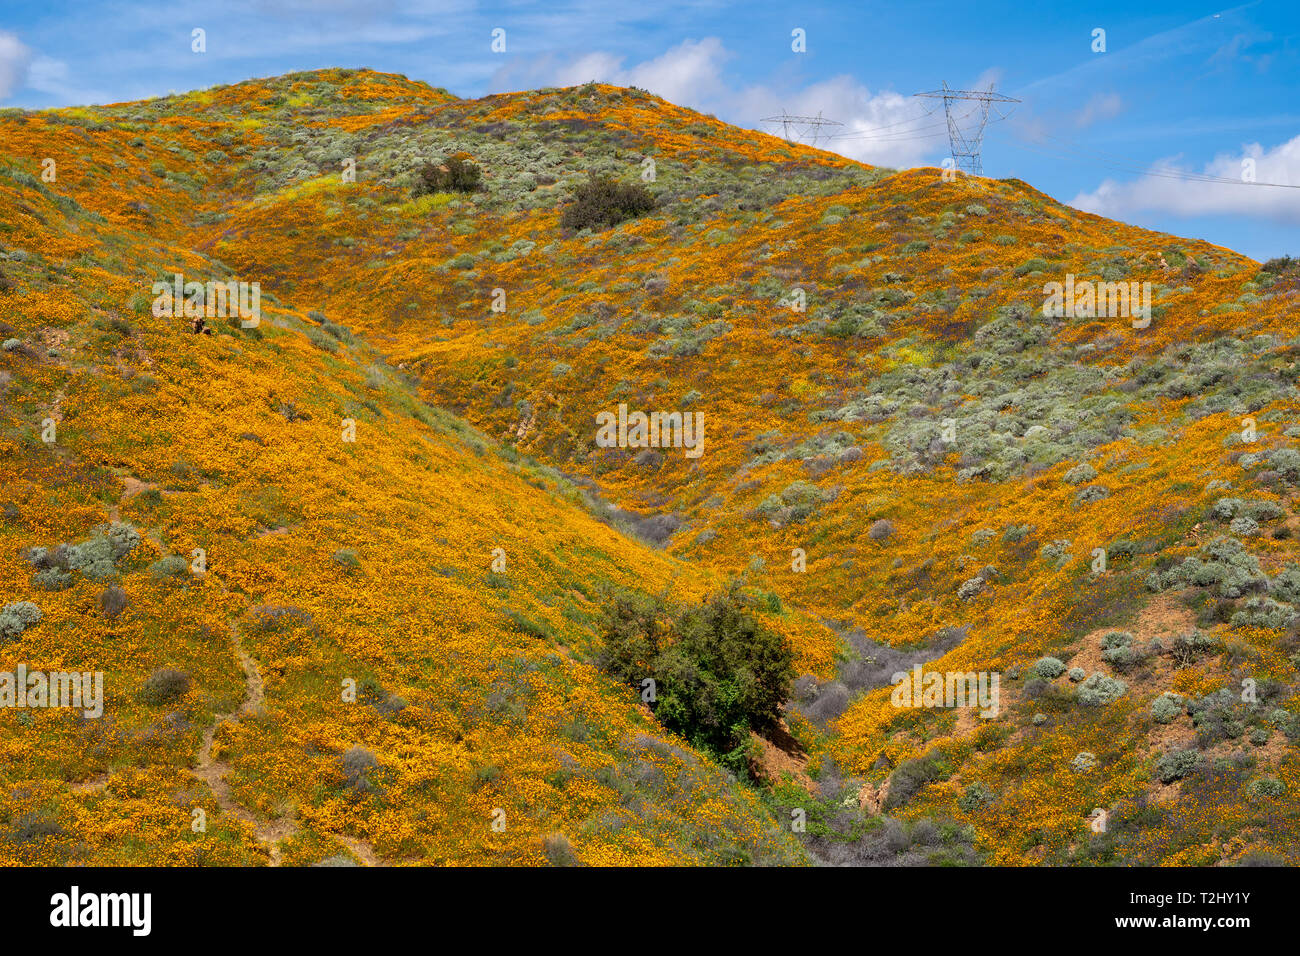 Orange California Poppies carpet the field in Walker Canyon in Lake Elsinore during the 2019 super bloom - Stock Image